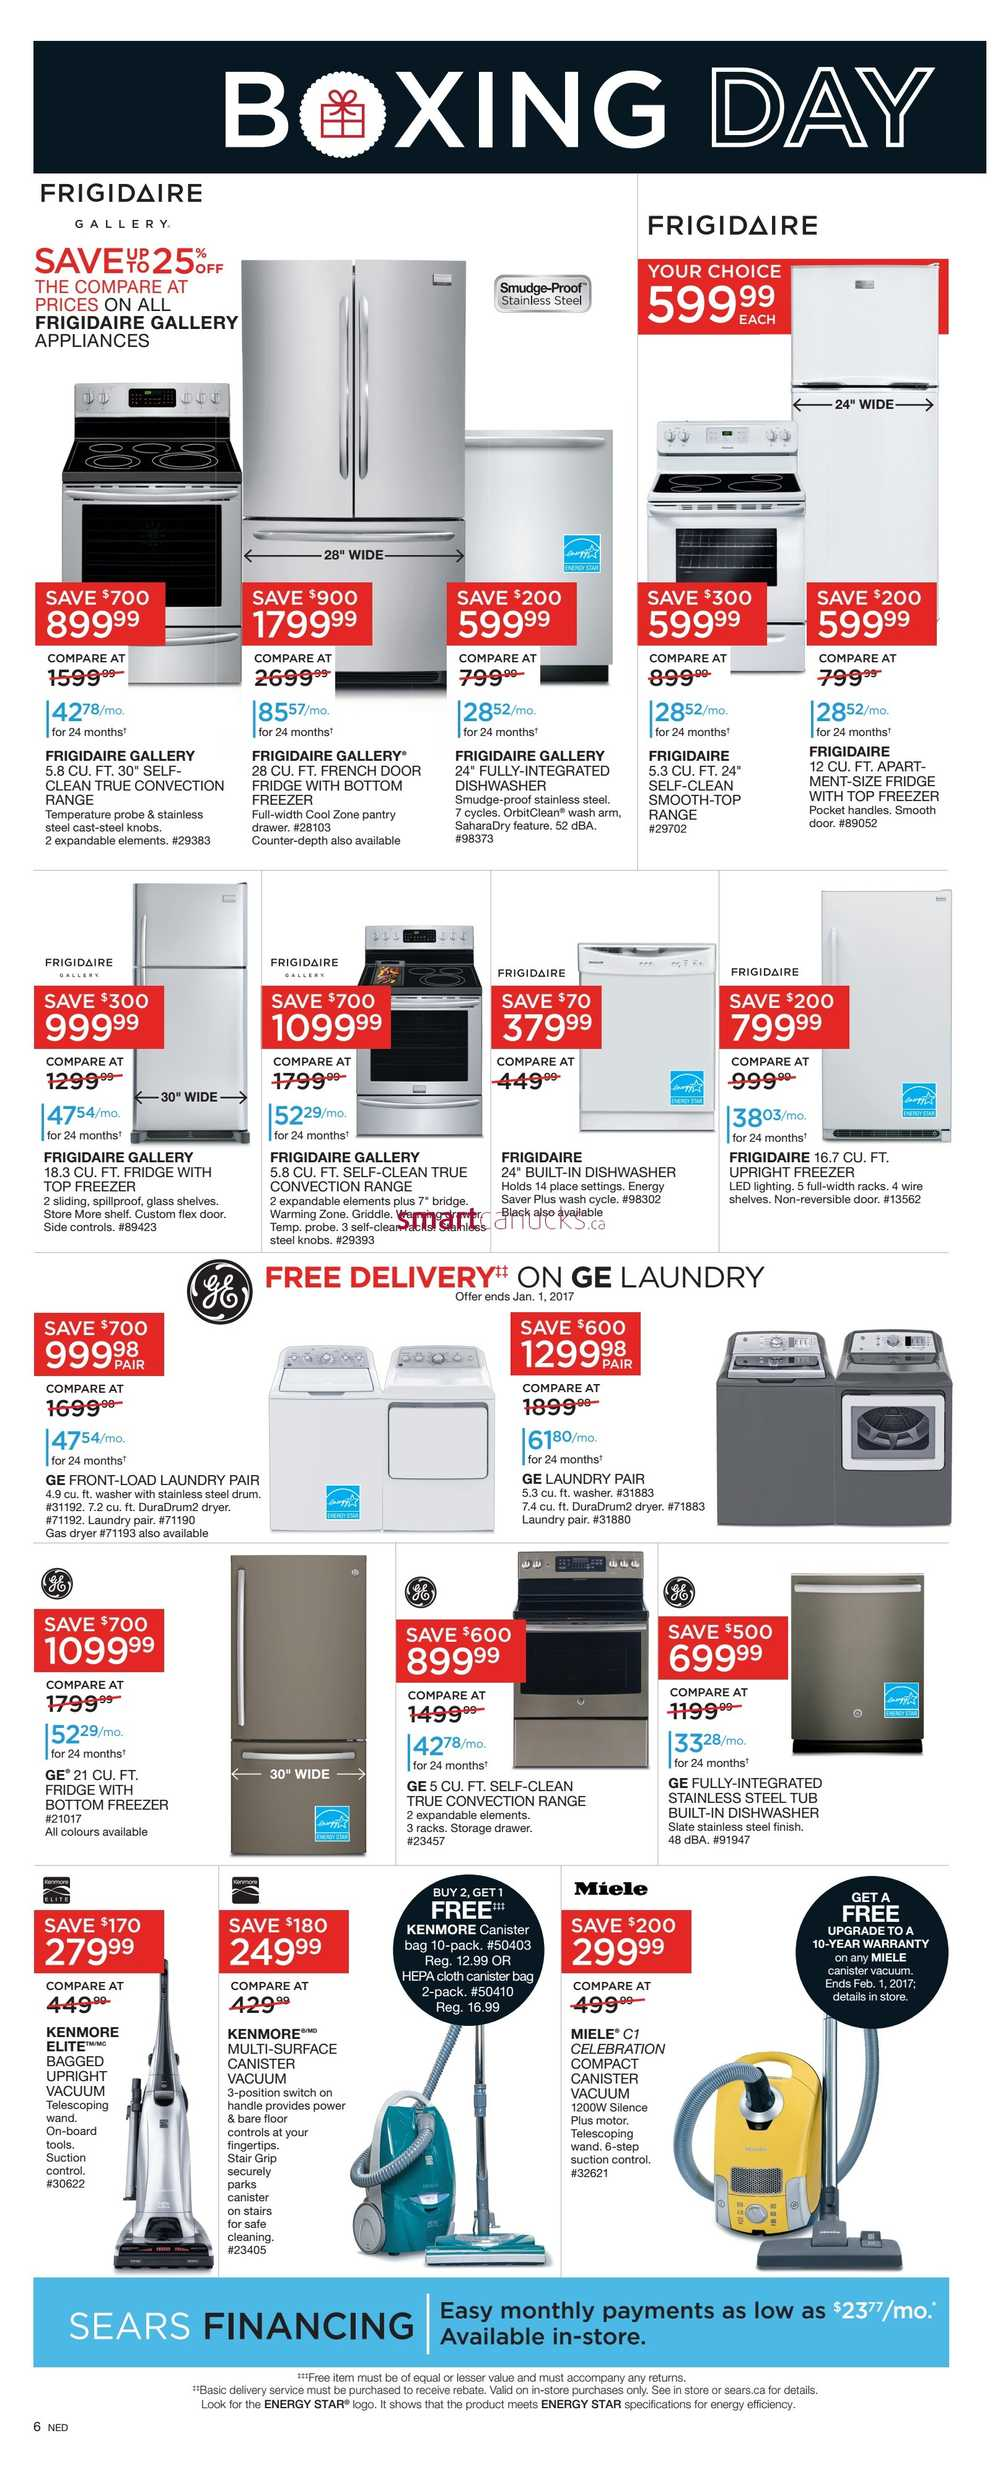 Check out our Sears discount codes including 13 coupon codes, sales, and 6 deals. Most popular now: Up to 75% Off Clearance. Latest offer: Extra 5% Off or 12 Months Financing with Sears .